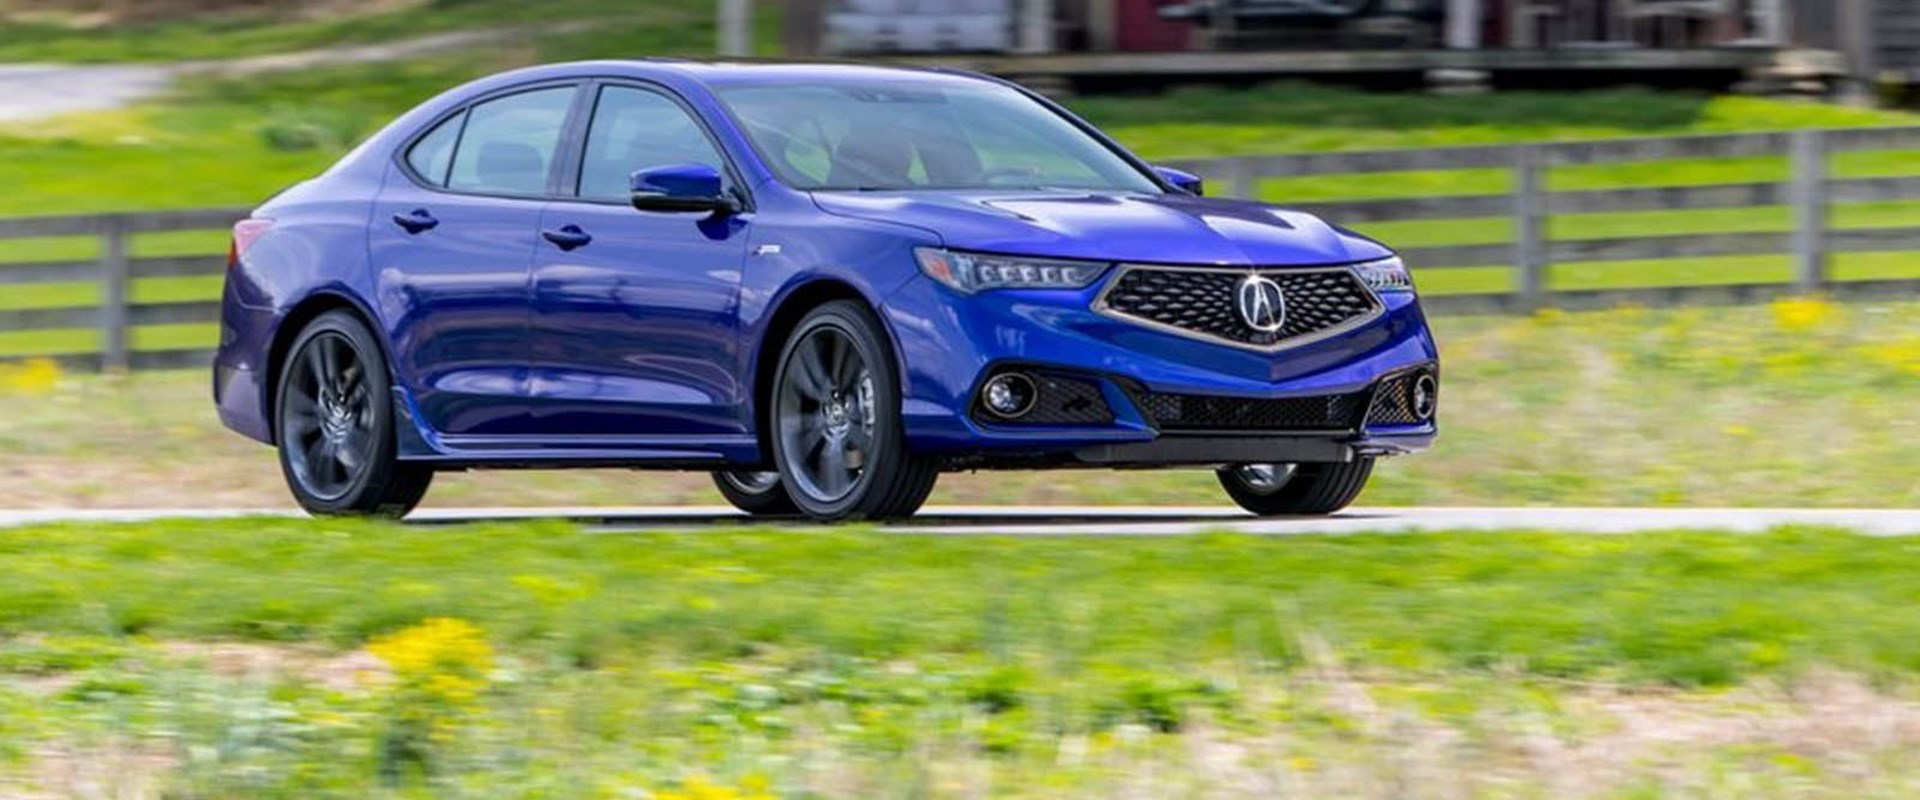 5 Improvements That Could Make The Acura TLX A Perfect Sport Sedan   CarBuzz